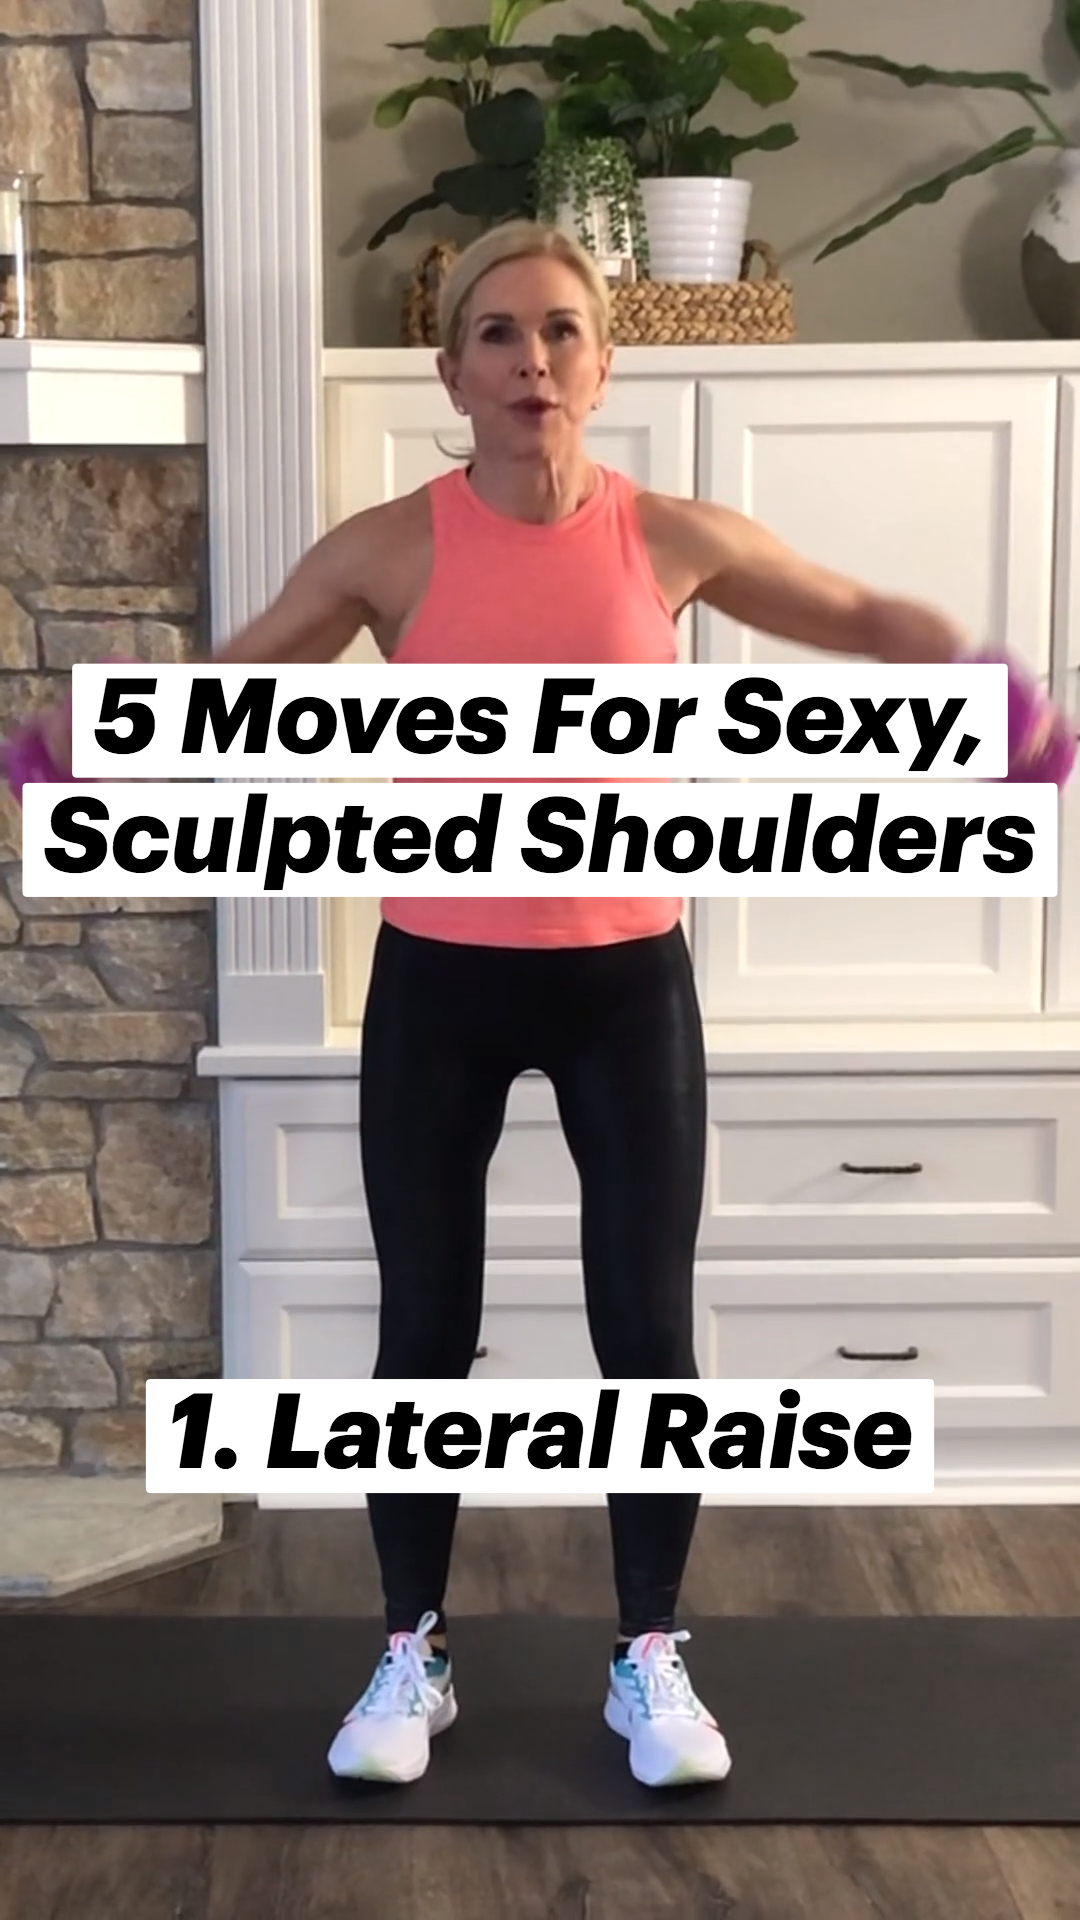 5 Moves For Sexy, Sculpted Shoulders